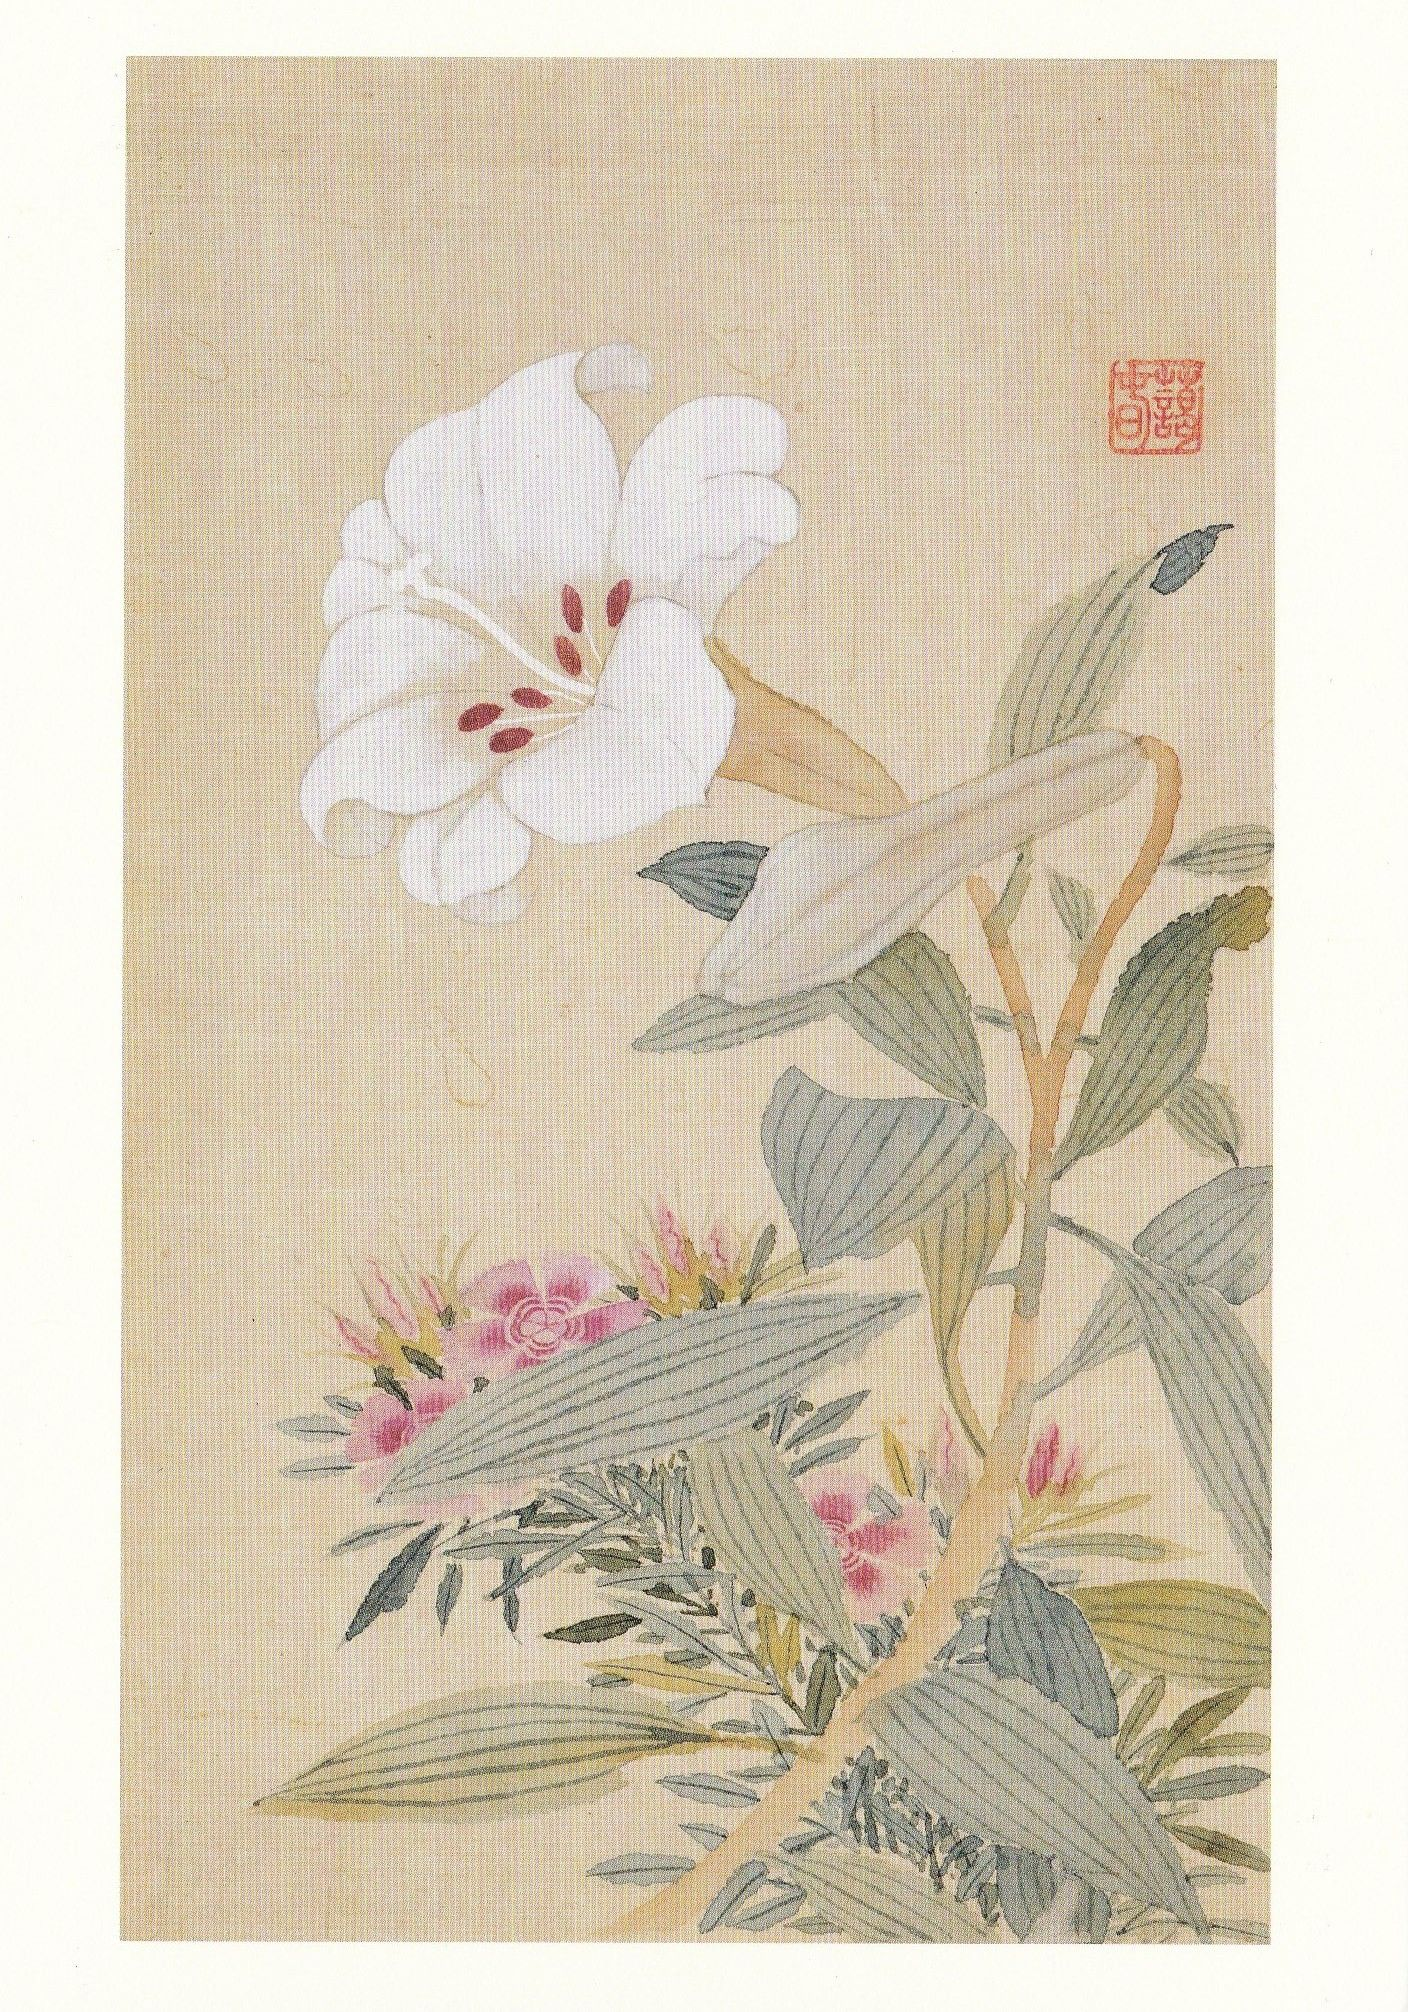 Sin Myeong-yeon (1809-86), Flower painting, Joseon19c, Light Color on Silk, National Museum of Korea. 신명연, 화훼화, 조선19c, 비단에 옅은 색, 국립중앙박물관